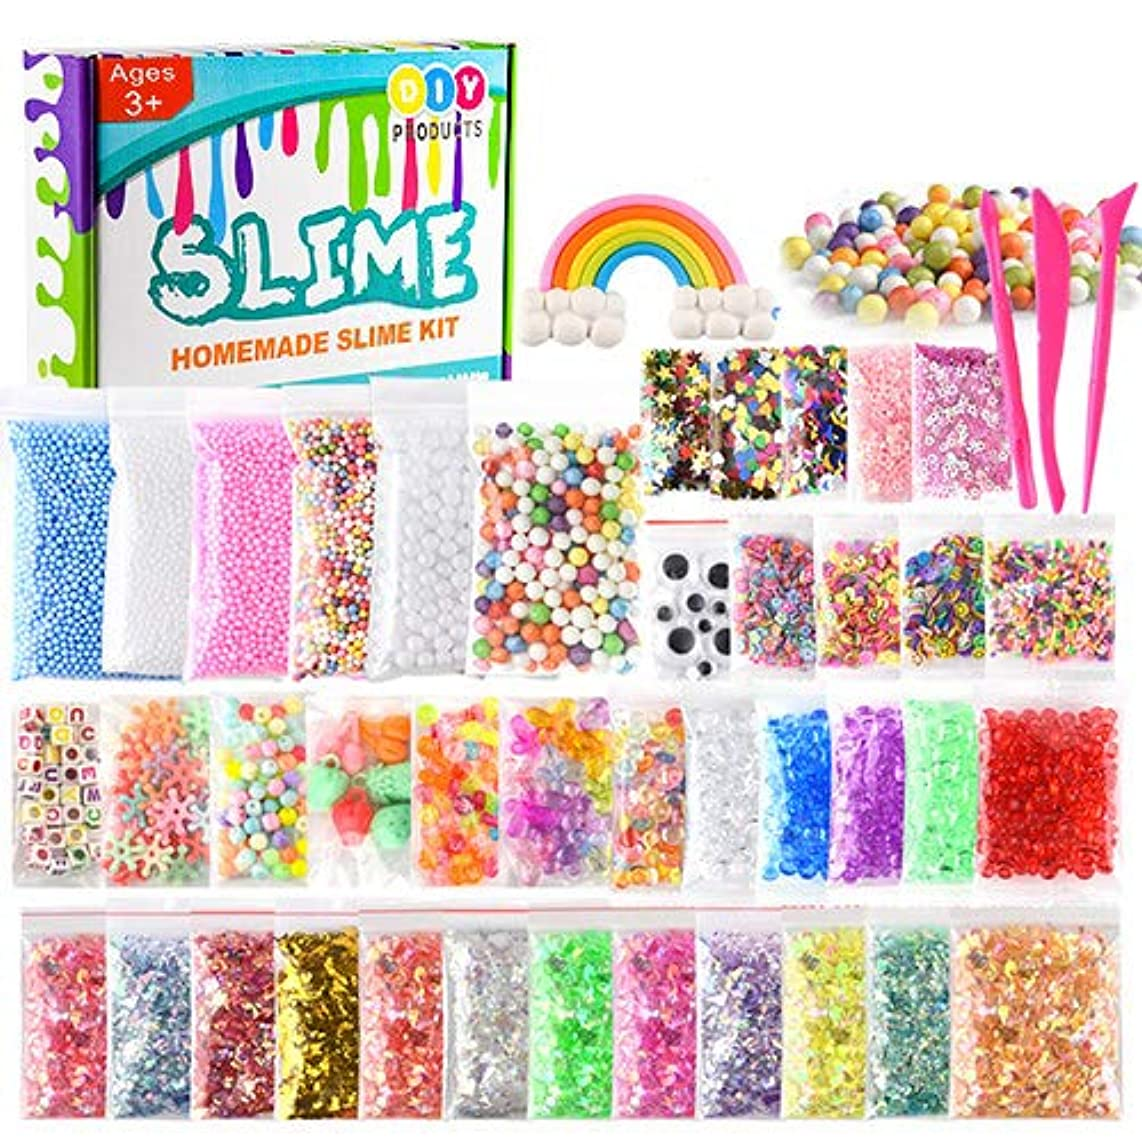 KUUQA 44 Packs Slime Supplies Kits Including Googly Eyes,Fishbowl Beads, Foam Balls, Glitter, Slices, Confetti, Slime Tools for DIY Craft Homemade Slime (Contain No Slime)